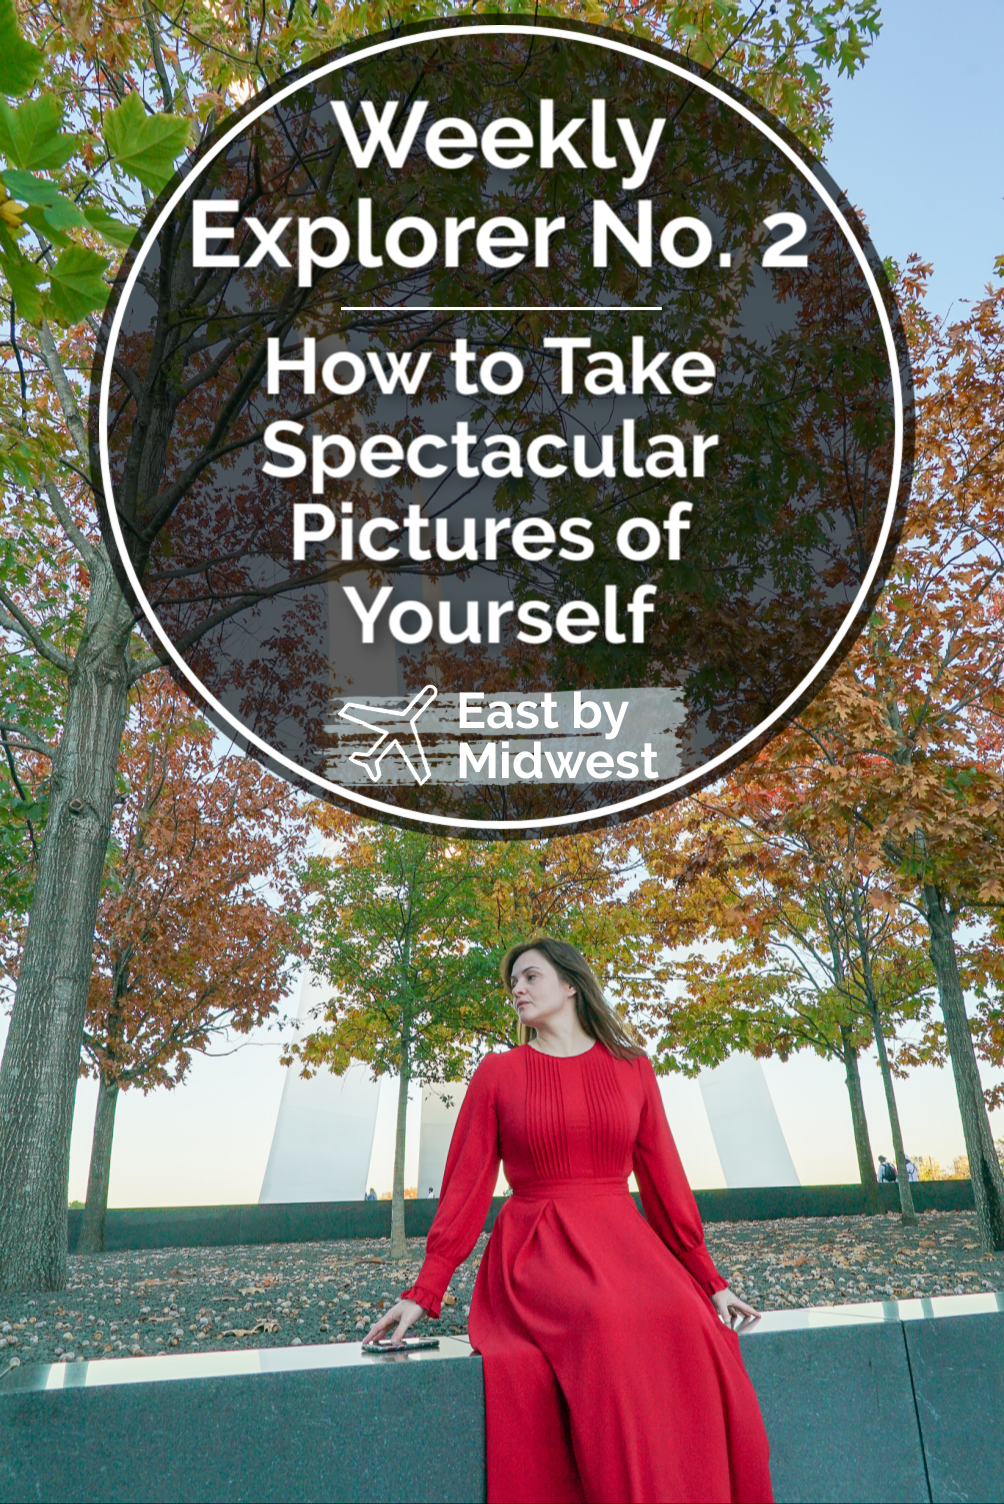 Weekly Explorer No. 2: How to Take Spectacular Pictures of Yourself